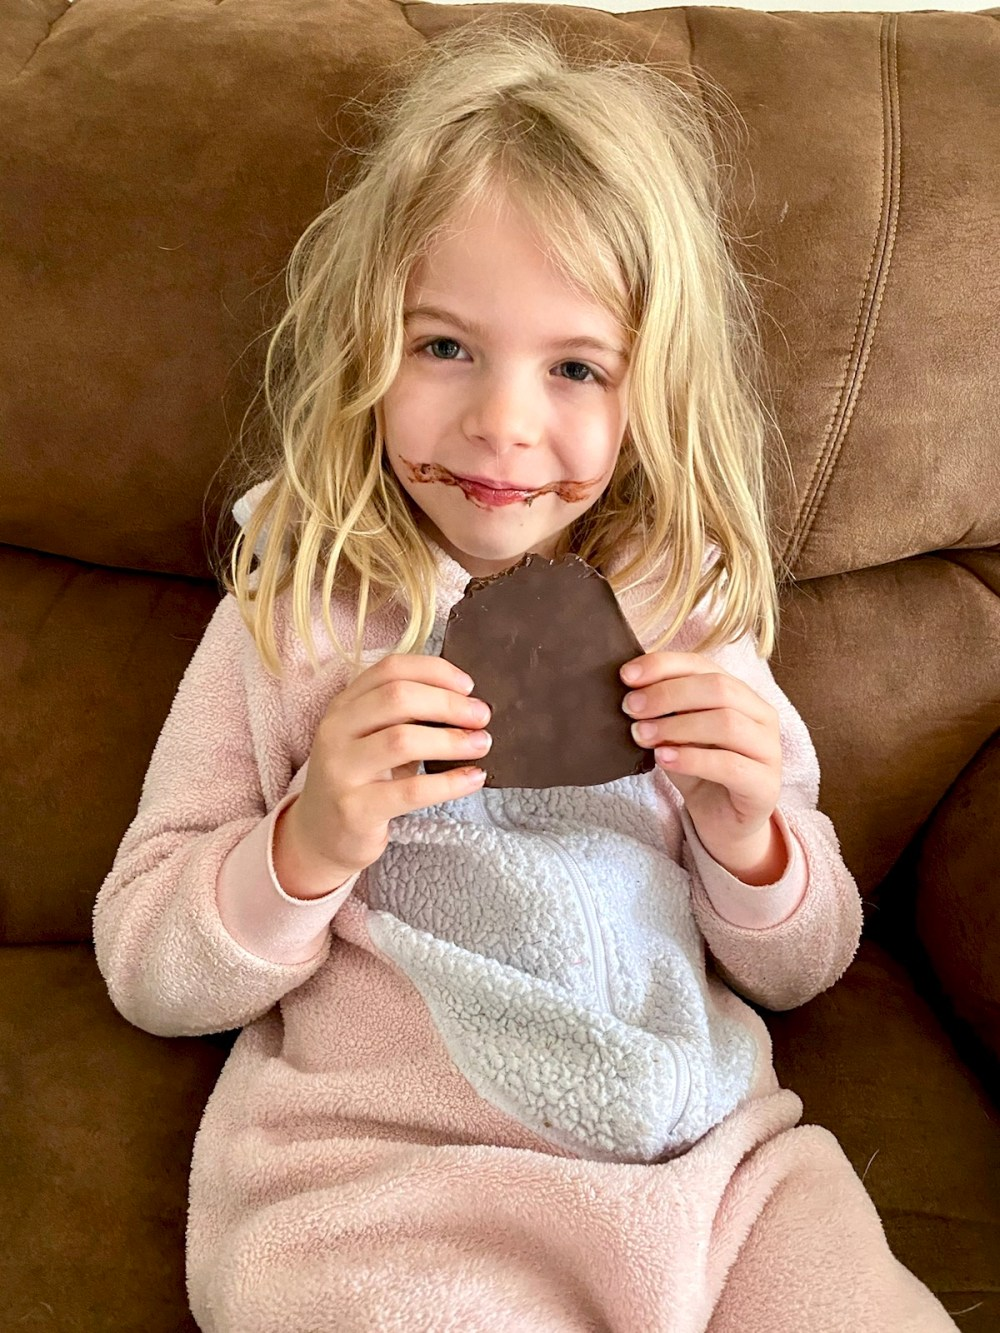 Loving that Easter chocolate!